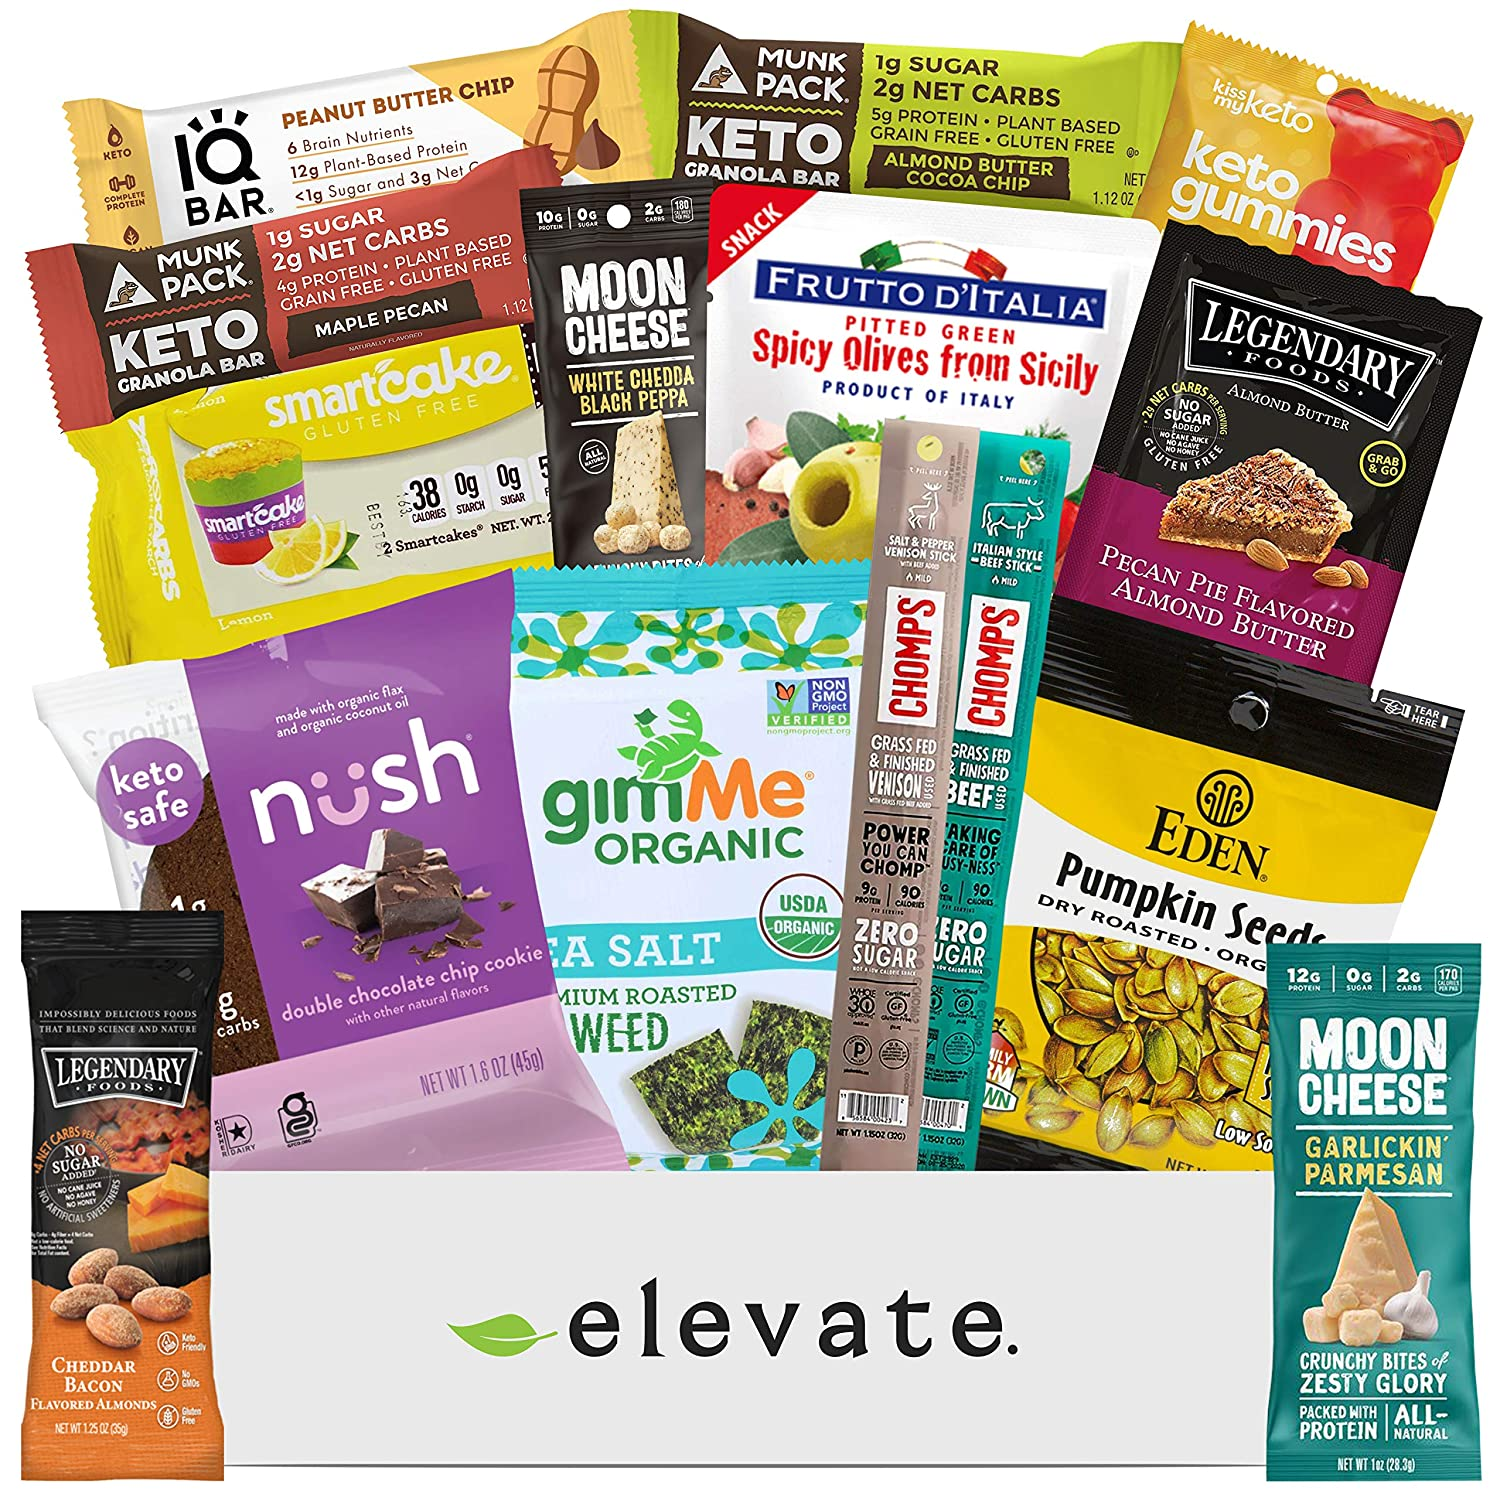 KETO Snack Box Care Package [15 Count] Mix Of Low Carb (5g or less), Low Sugar (2g or less), Gluten Free Snacks, A Gift Box Of High Fat, High Protein Keto Friendly Treats